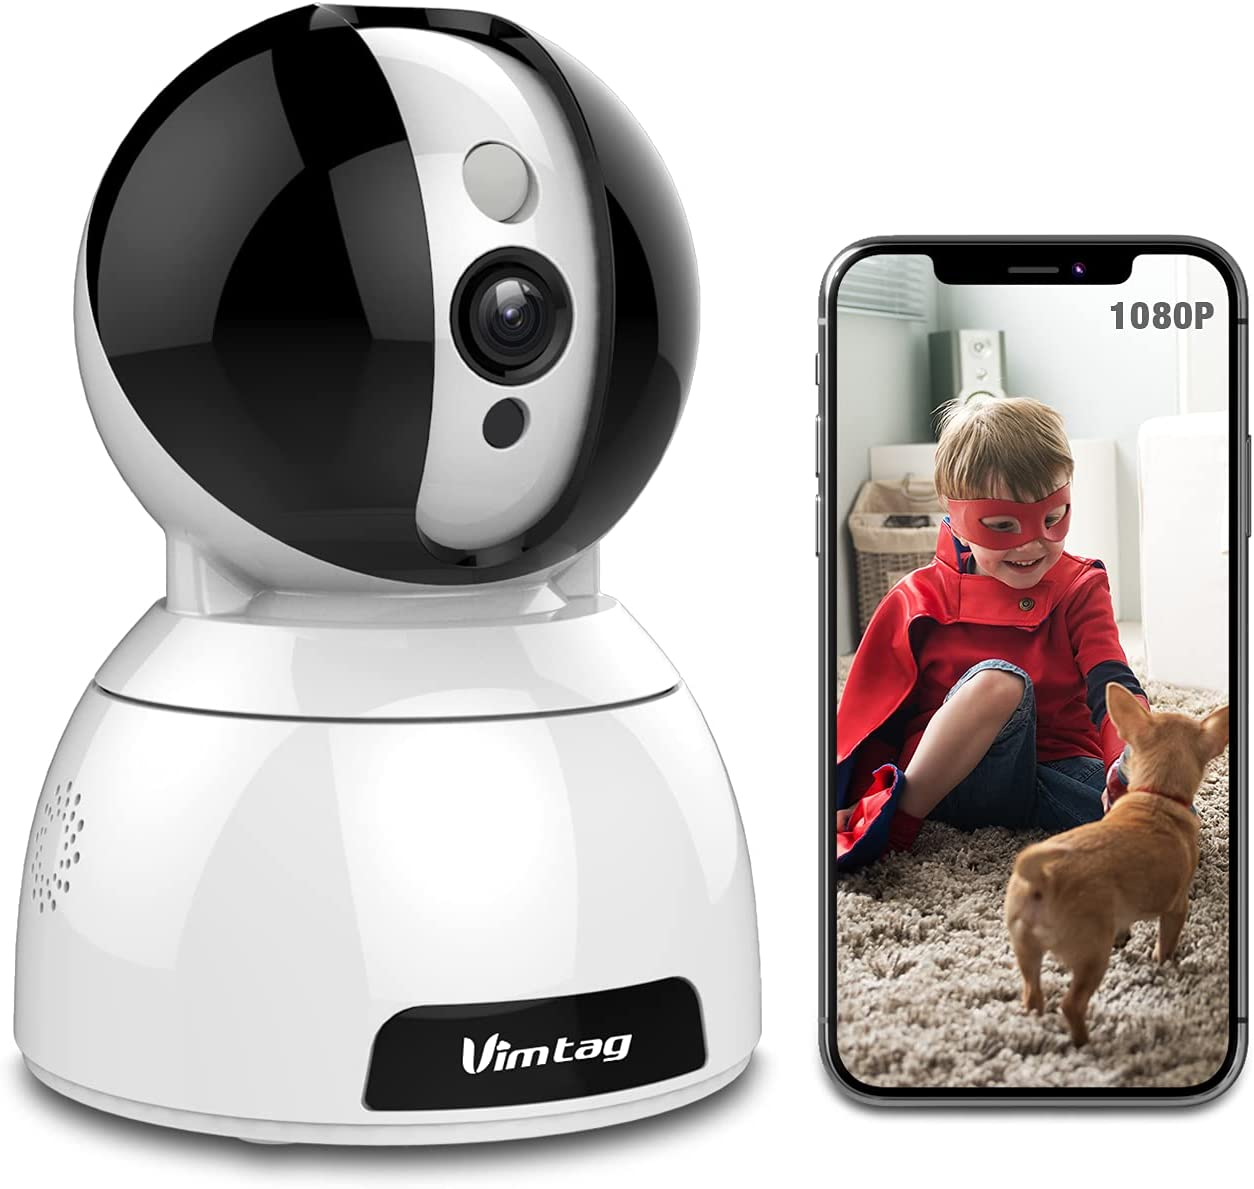 1080P FHD WiFi Pet Camera, Vimtag Baby Monitor Dog Cam Surveillance with Pan/Tilt/Zoom, Motion Detection, 2 Way Audio, IR Night Vision, Remote Monitoring for Home Security Indoor Camera